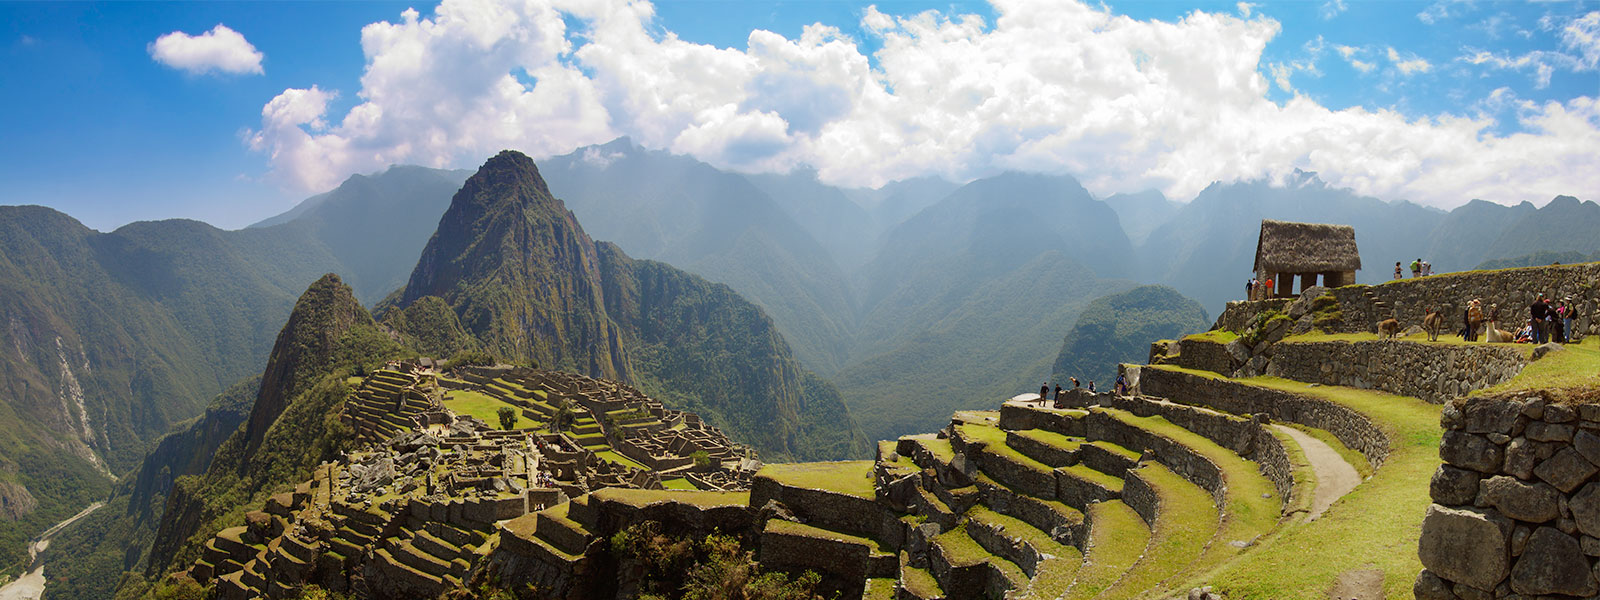 machu-picchu-travel-tips-how-and-when-to-go-there